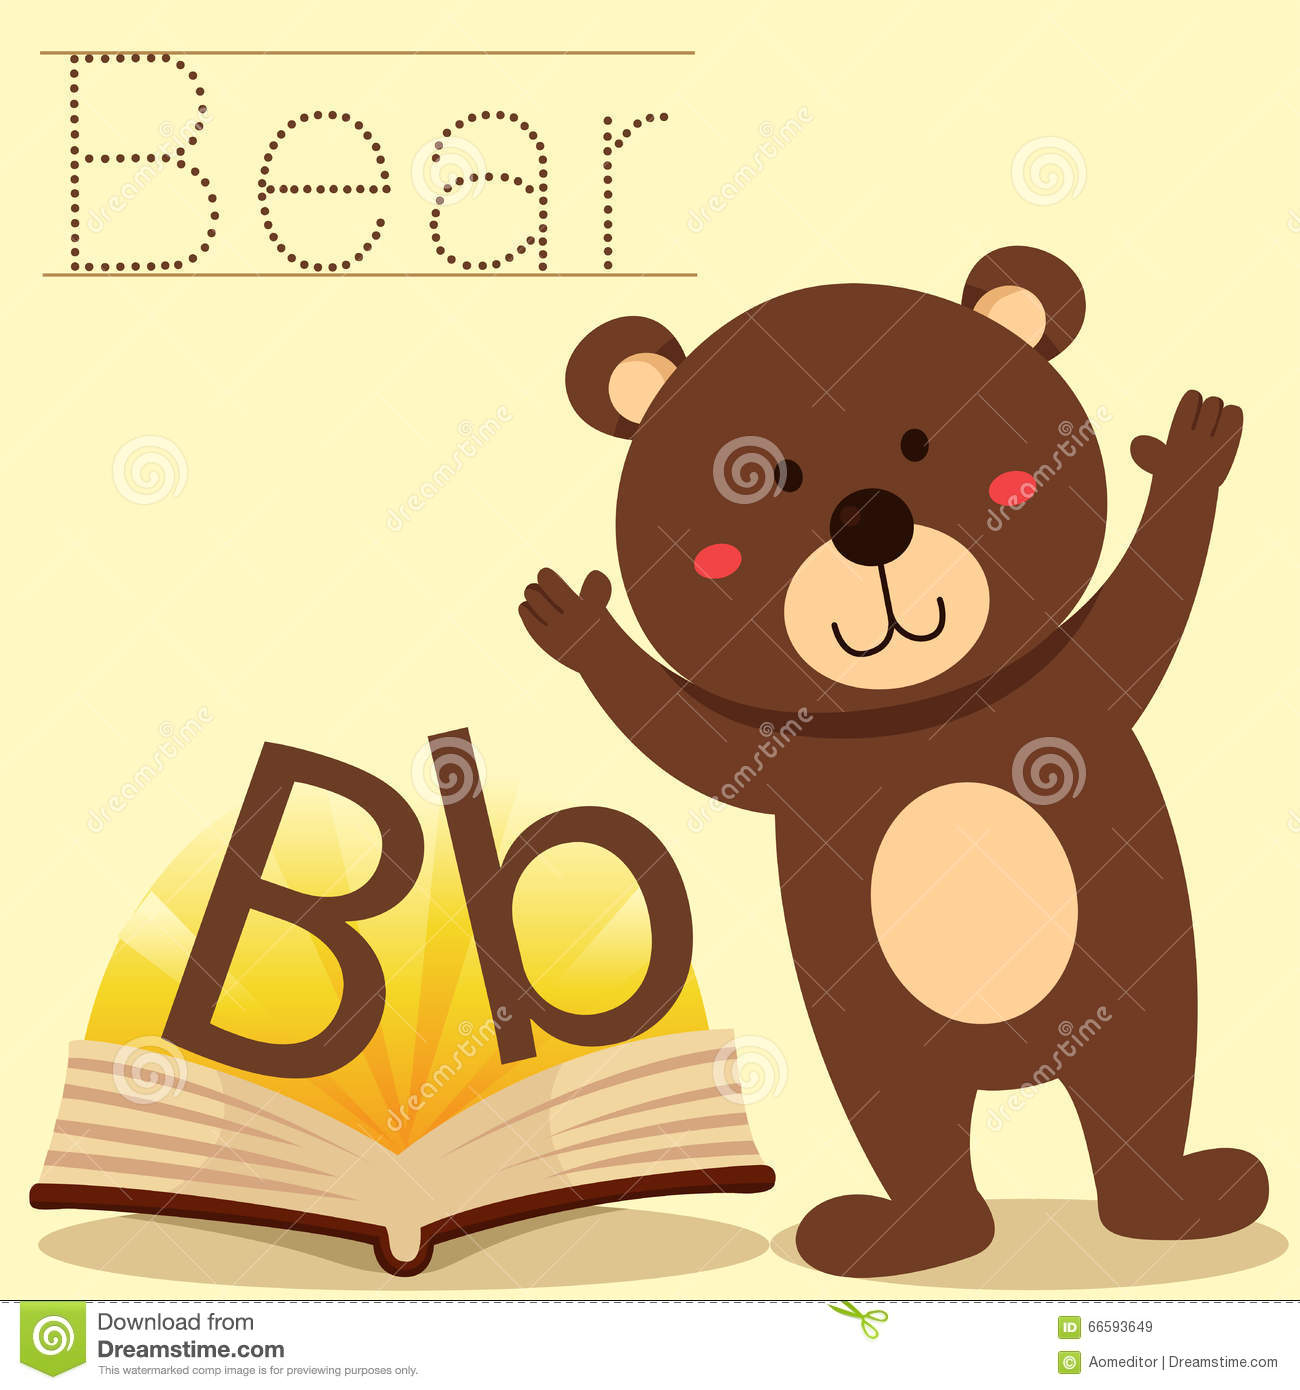 Illustrator Of B For Bear Vocabulary Stock Vector